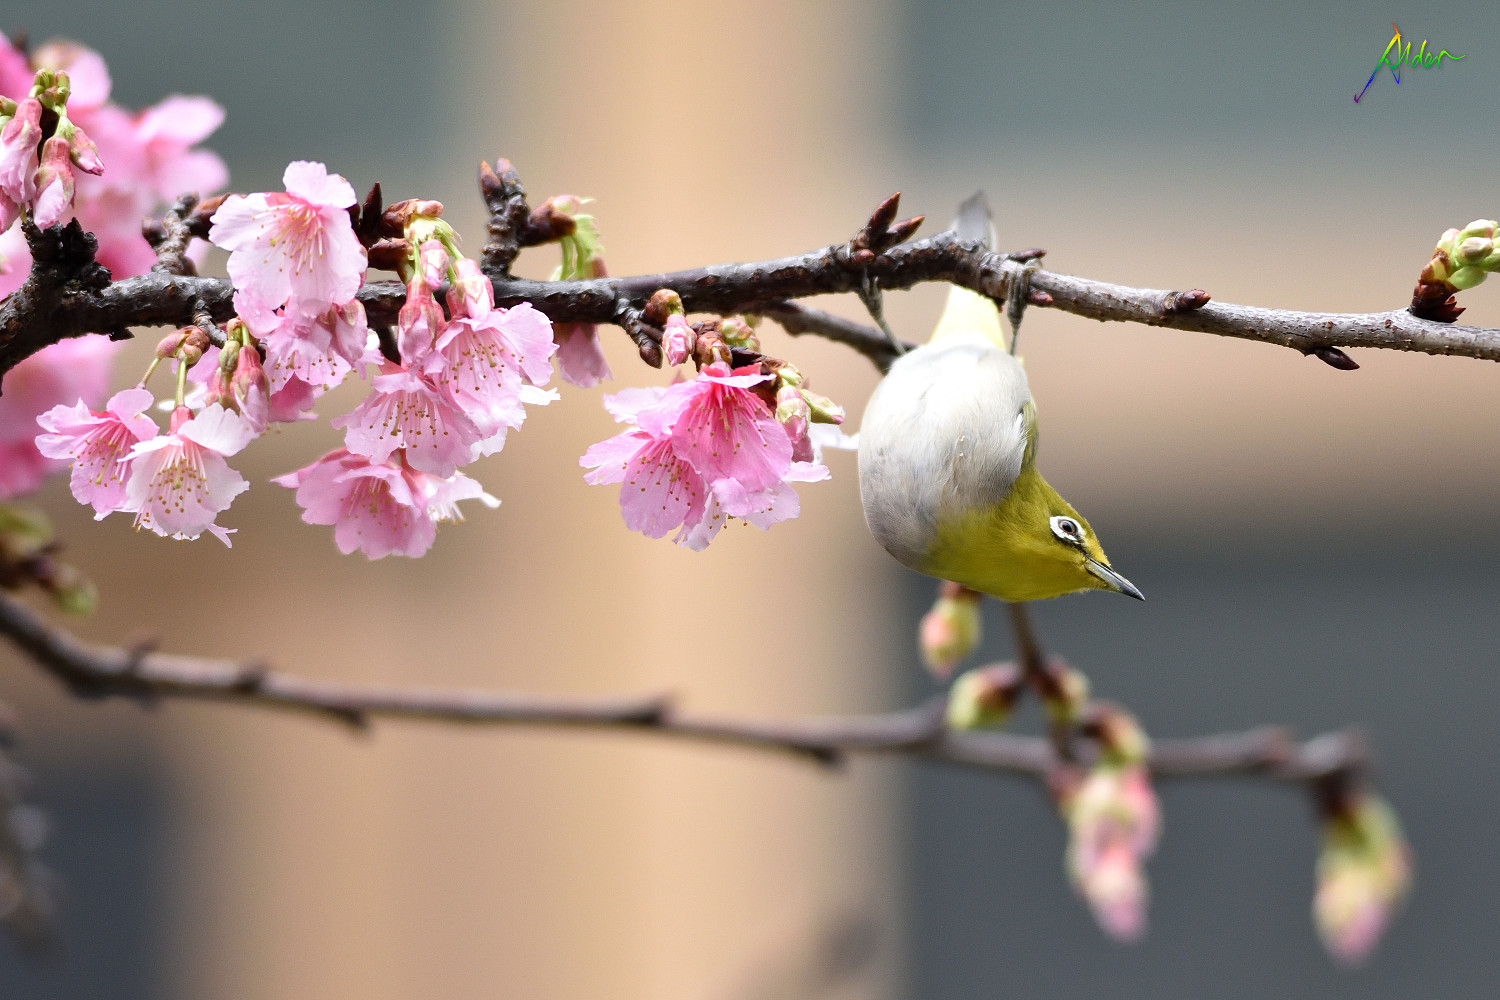 Sakura_White-eye_7840